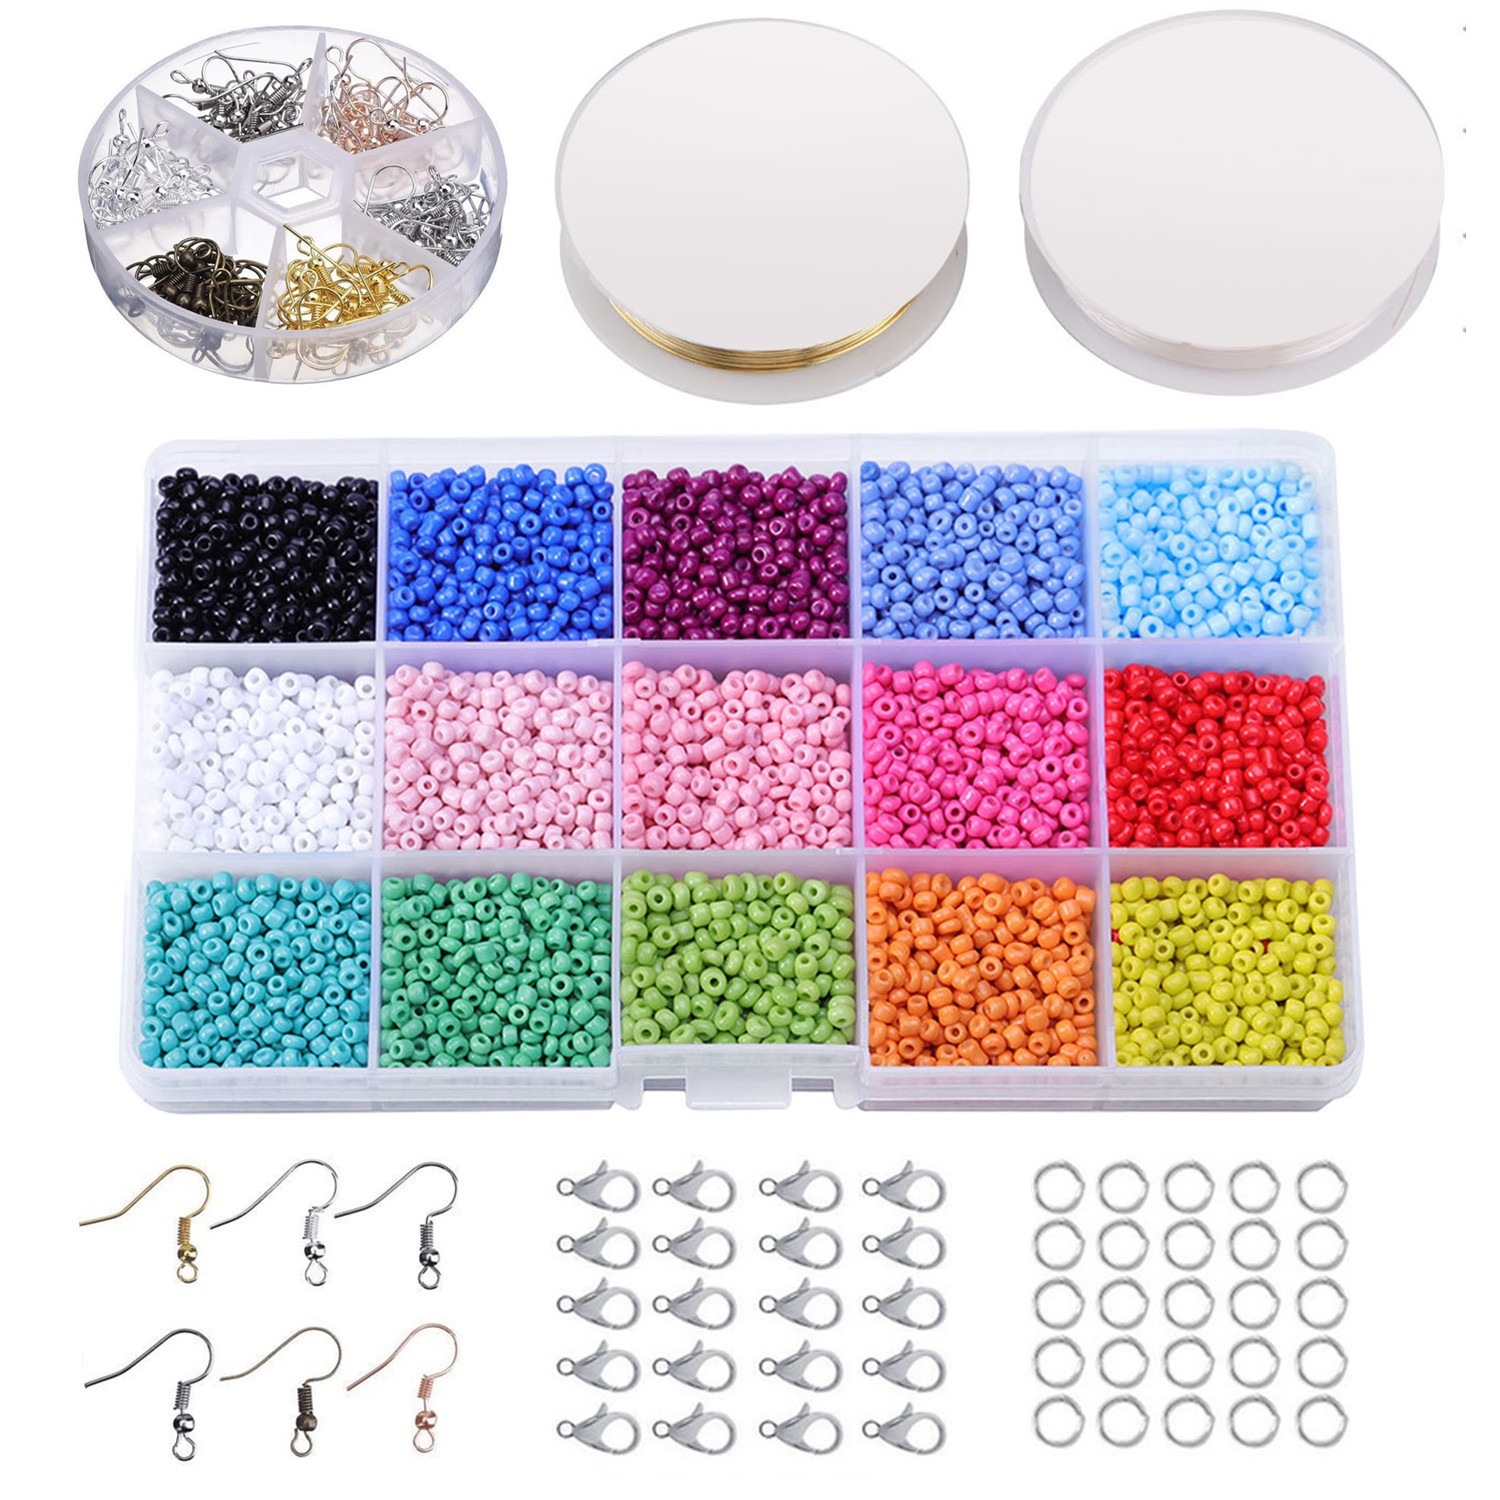 Kids Colorful Mini Glass Beads Thread Wire Earring Hooks DIY String Beaded  Making Jewelry Necklaces Bracelets Accessory Toy